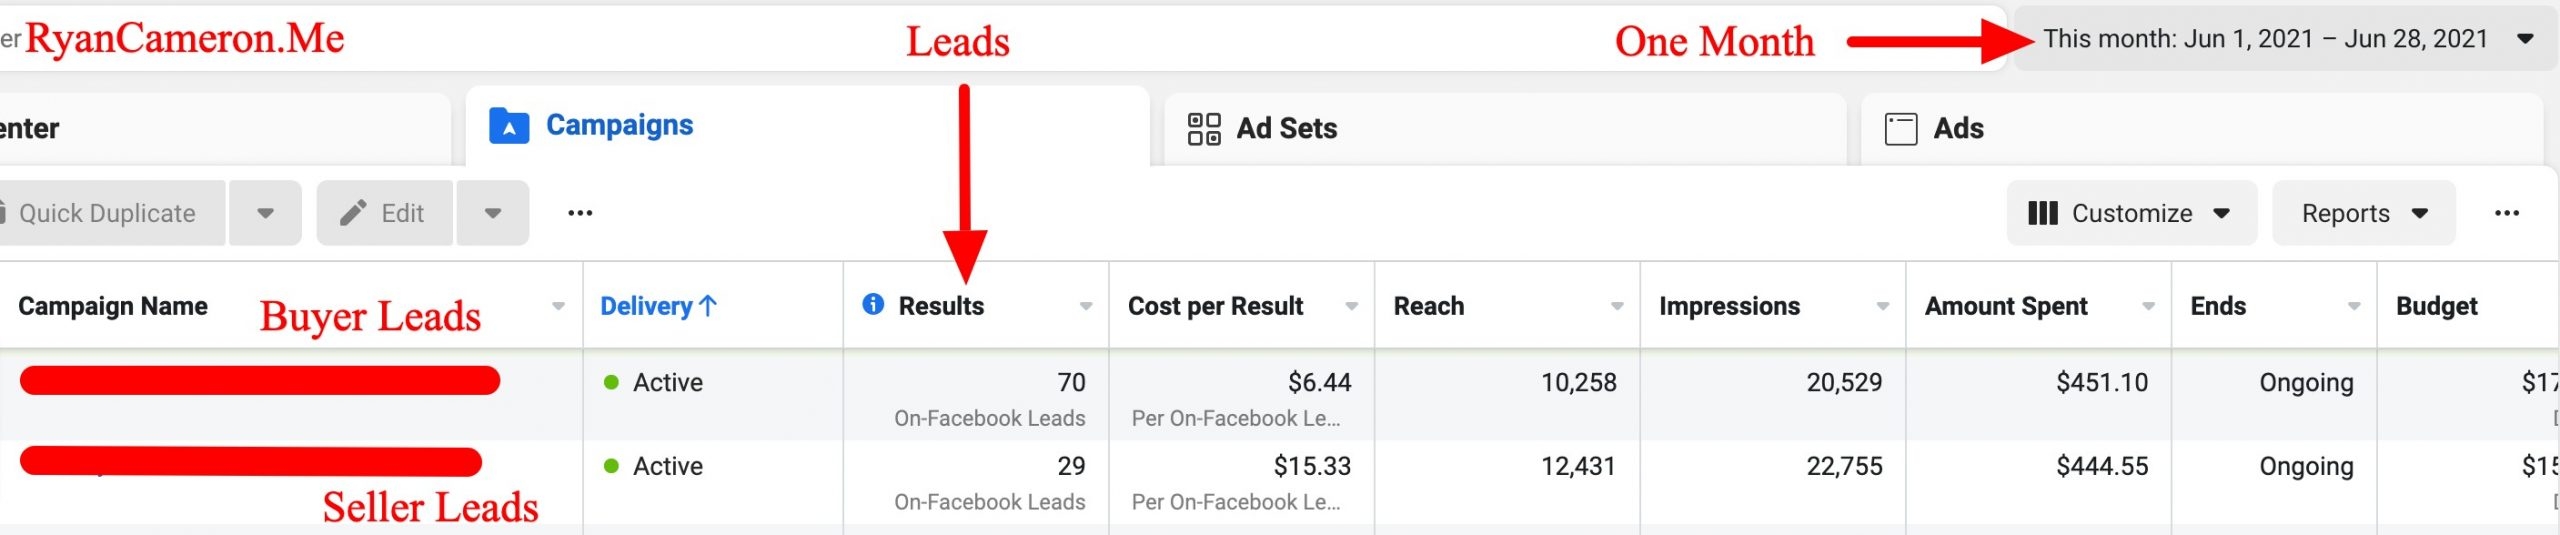 Lead generation results